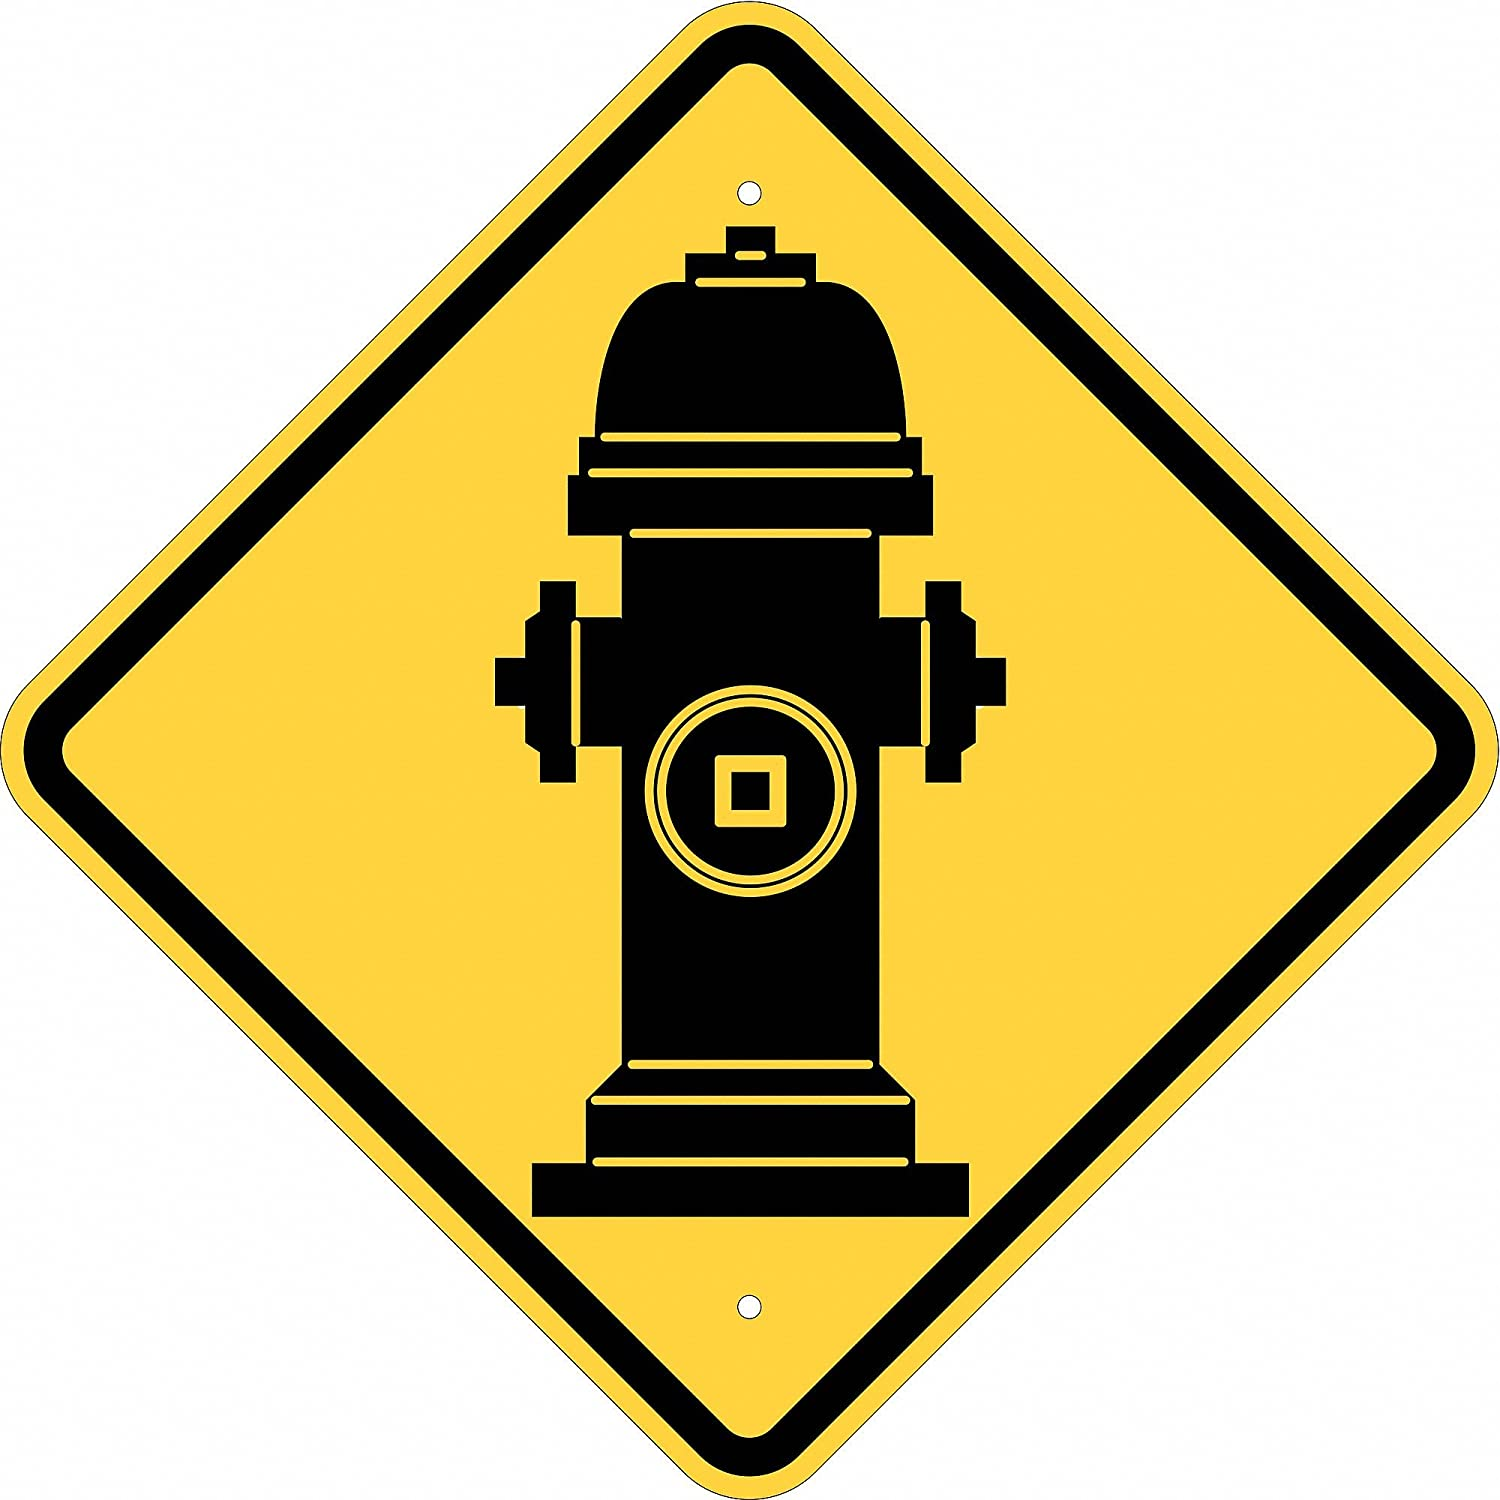 LegendNo Parking Fire Hydrant 12 Width Brady 124332 Traffic Control Sign Red on White 18 Height